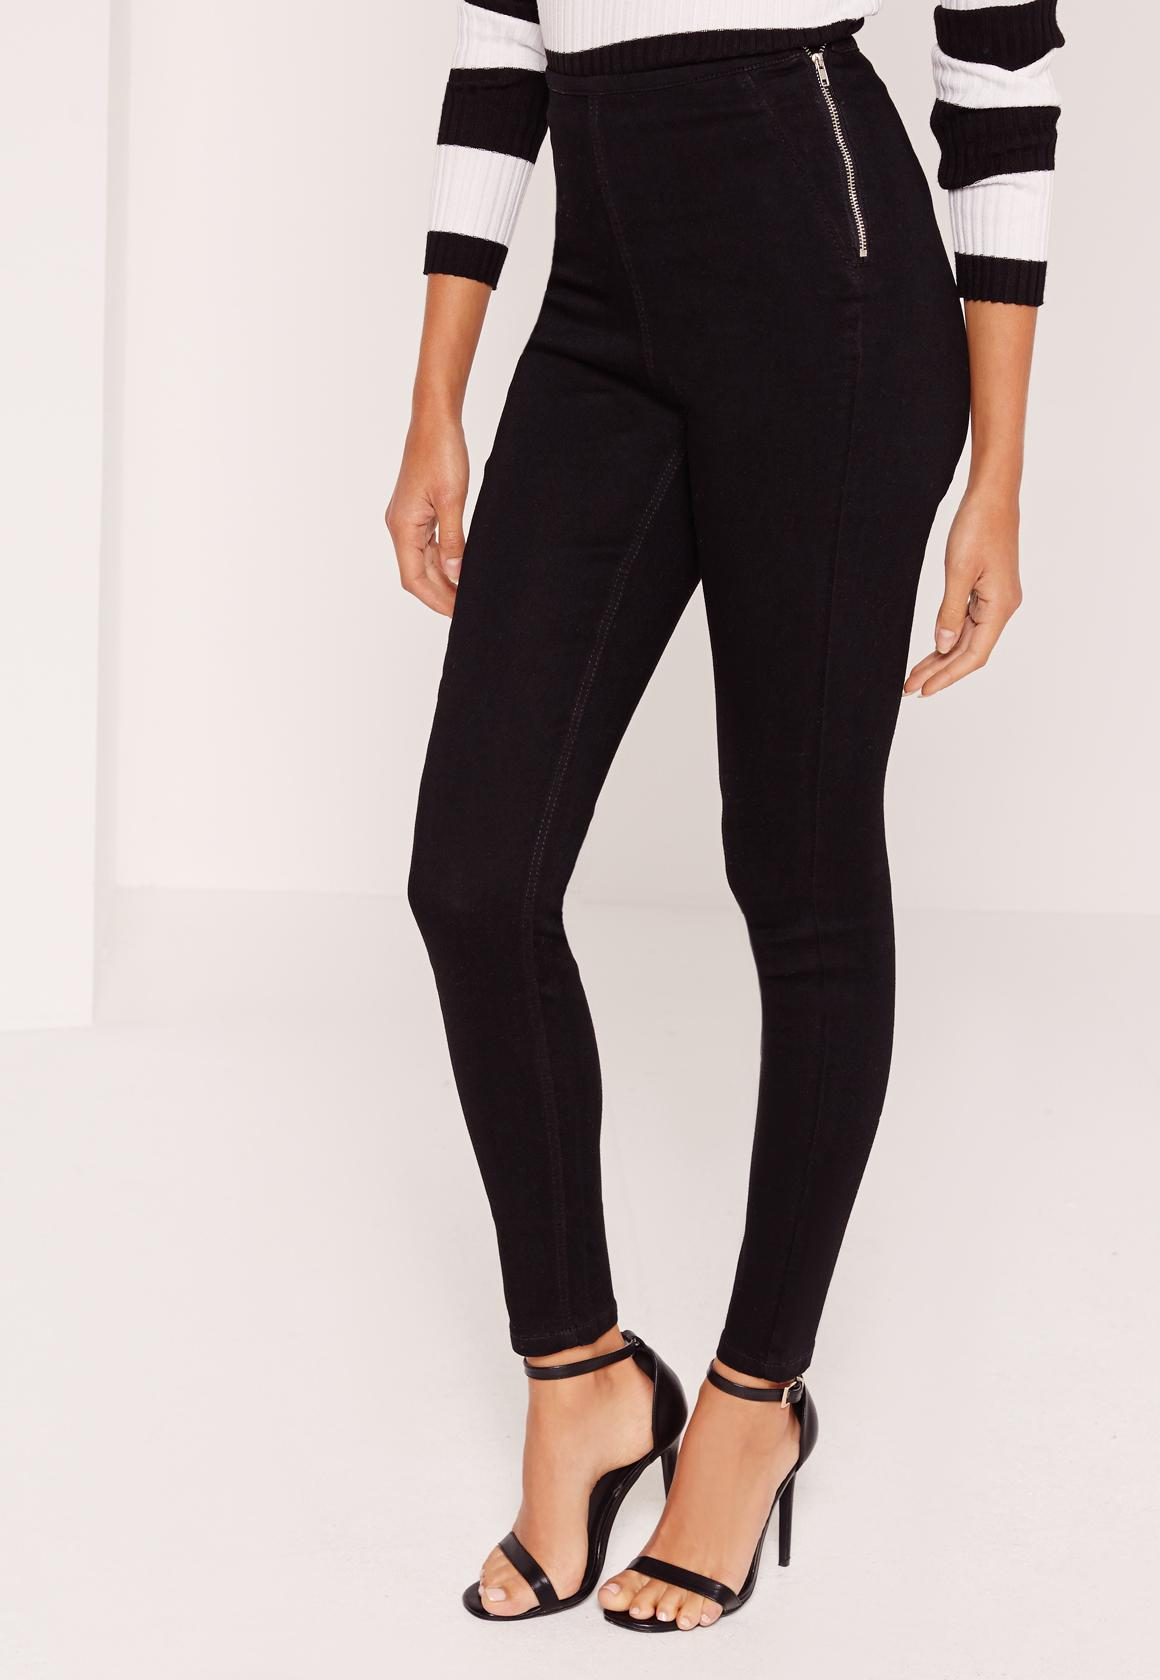 Lawless High Waisted Jeggings Black  Missguided